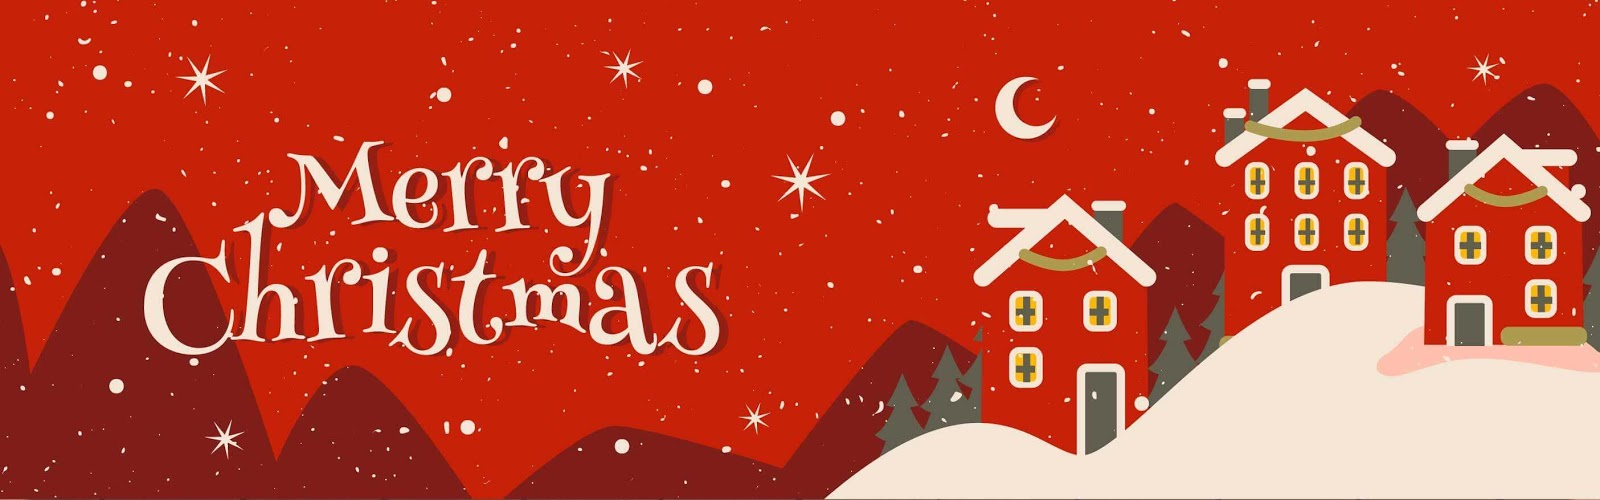 Christmas Card Template Download Free